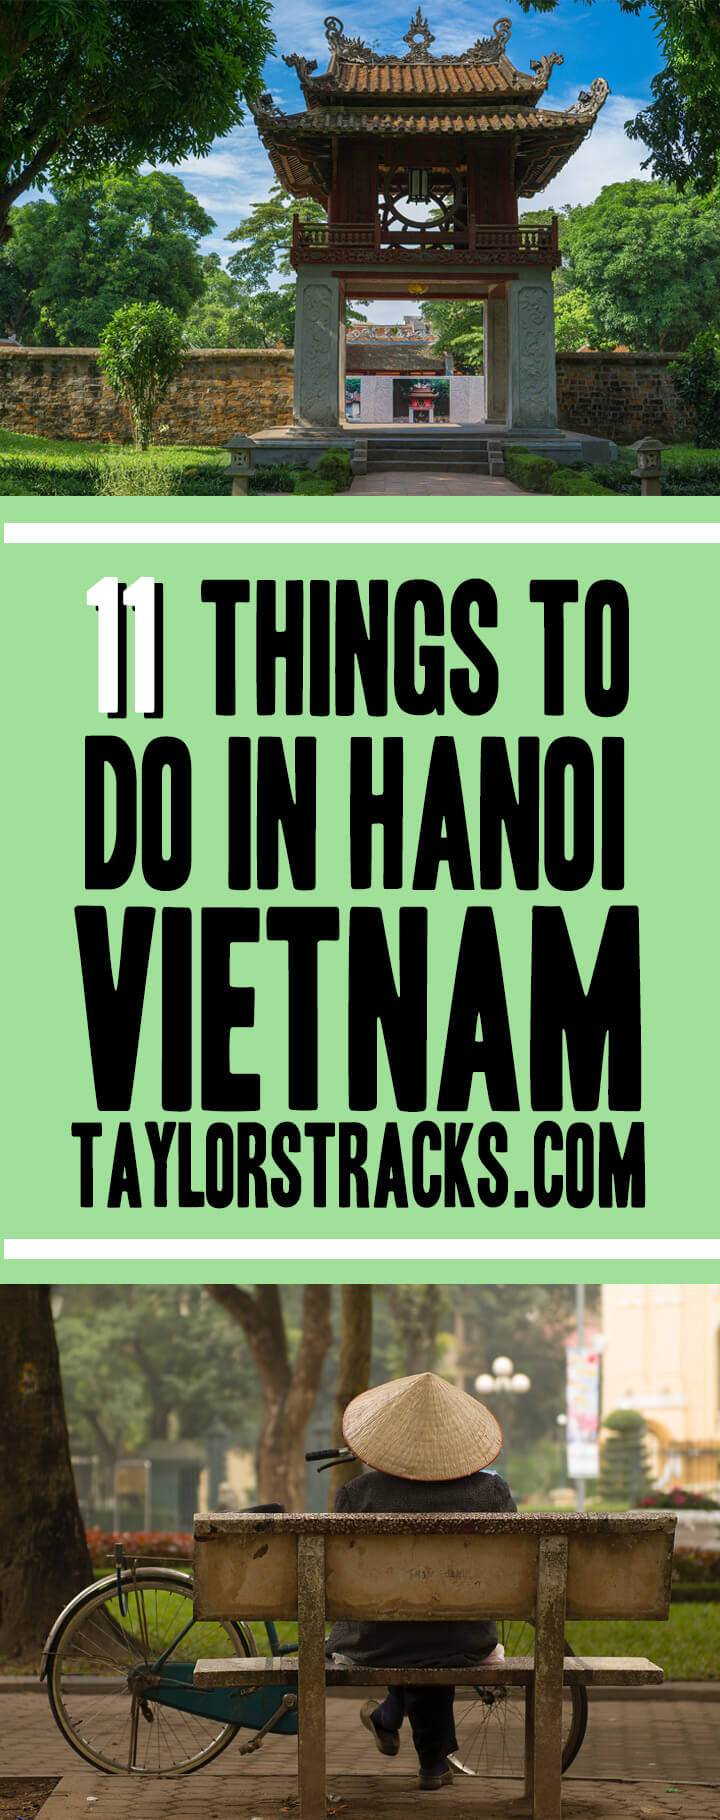 What-to-do-in-Hanoi www.taylorstracks.com